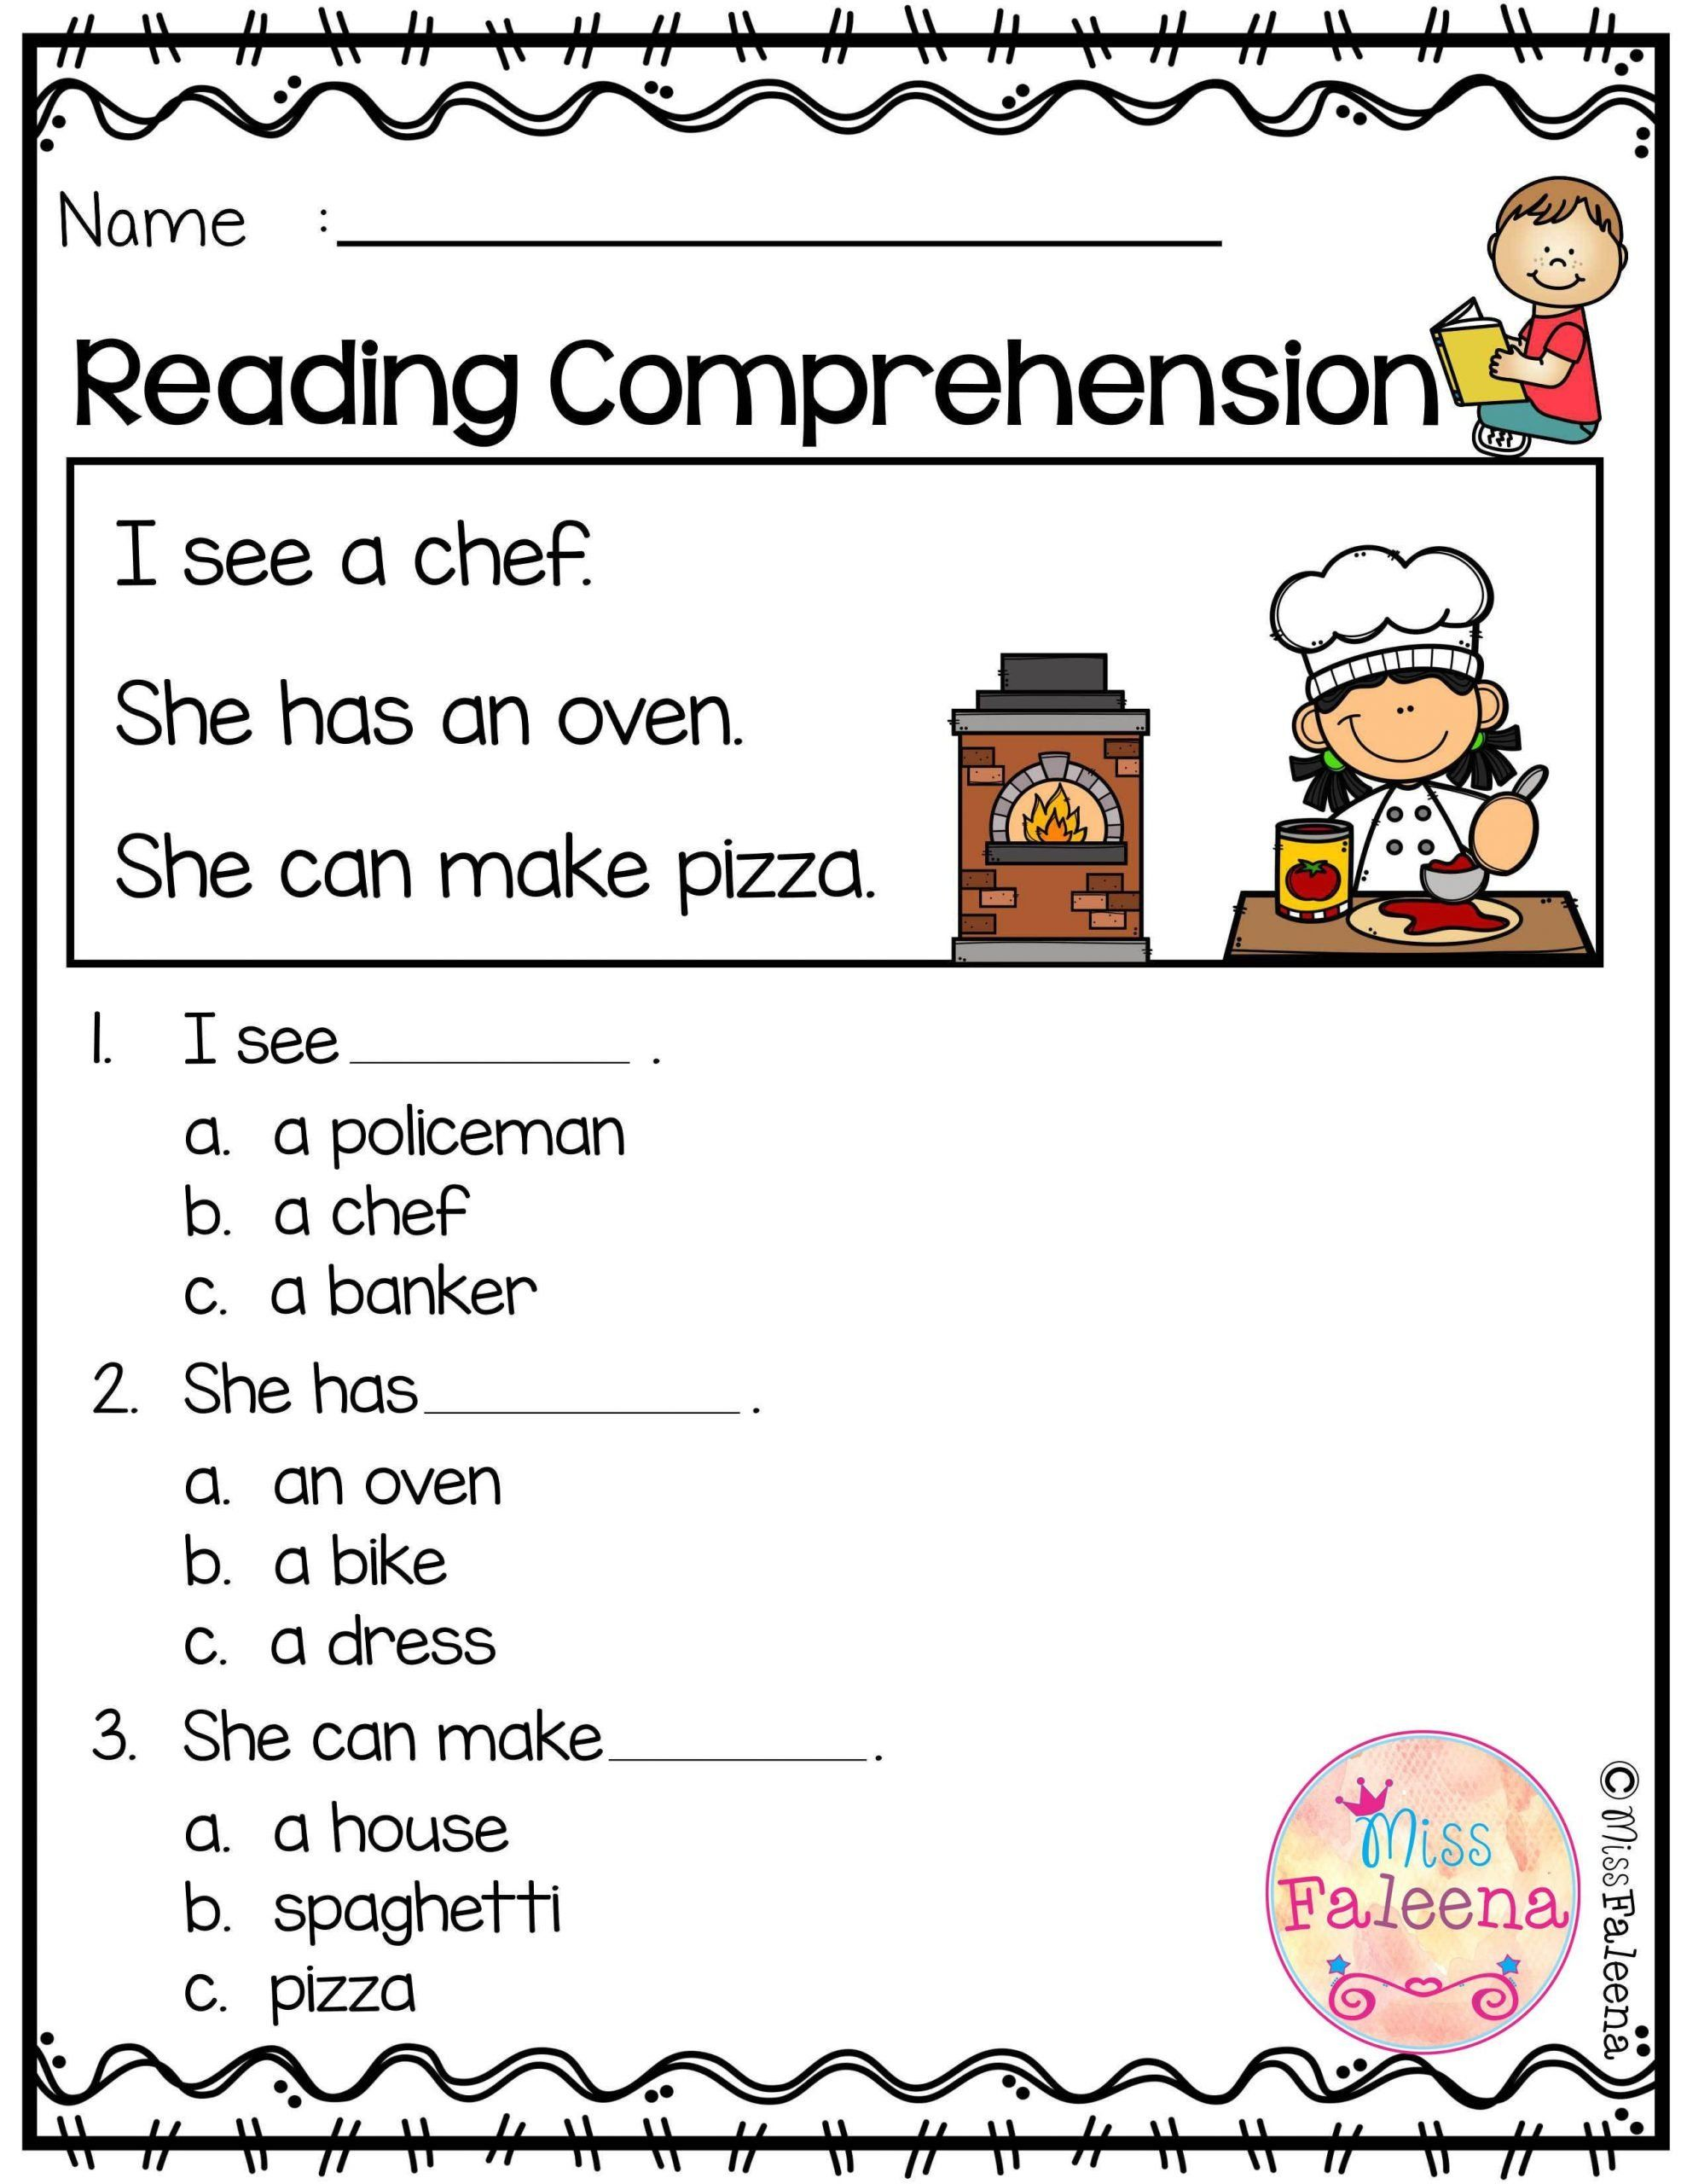 Reading Comprehension Kindergarten Worksheets Free Free